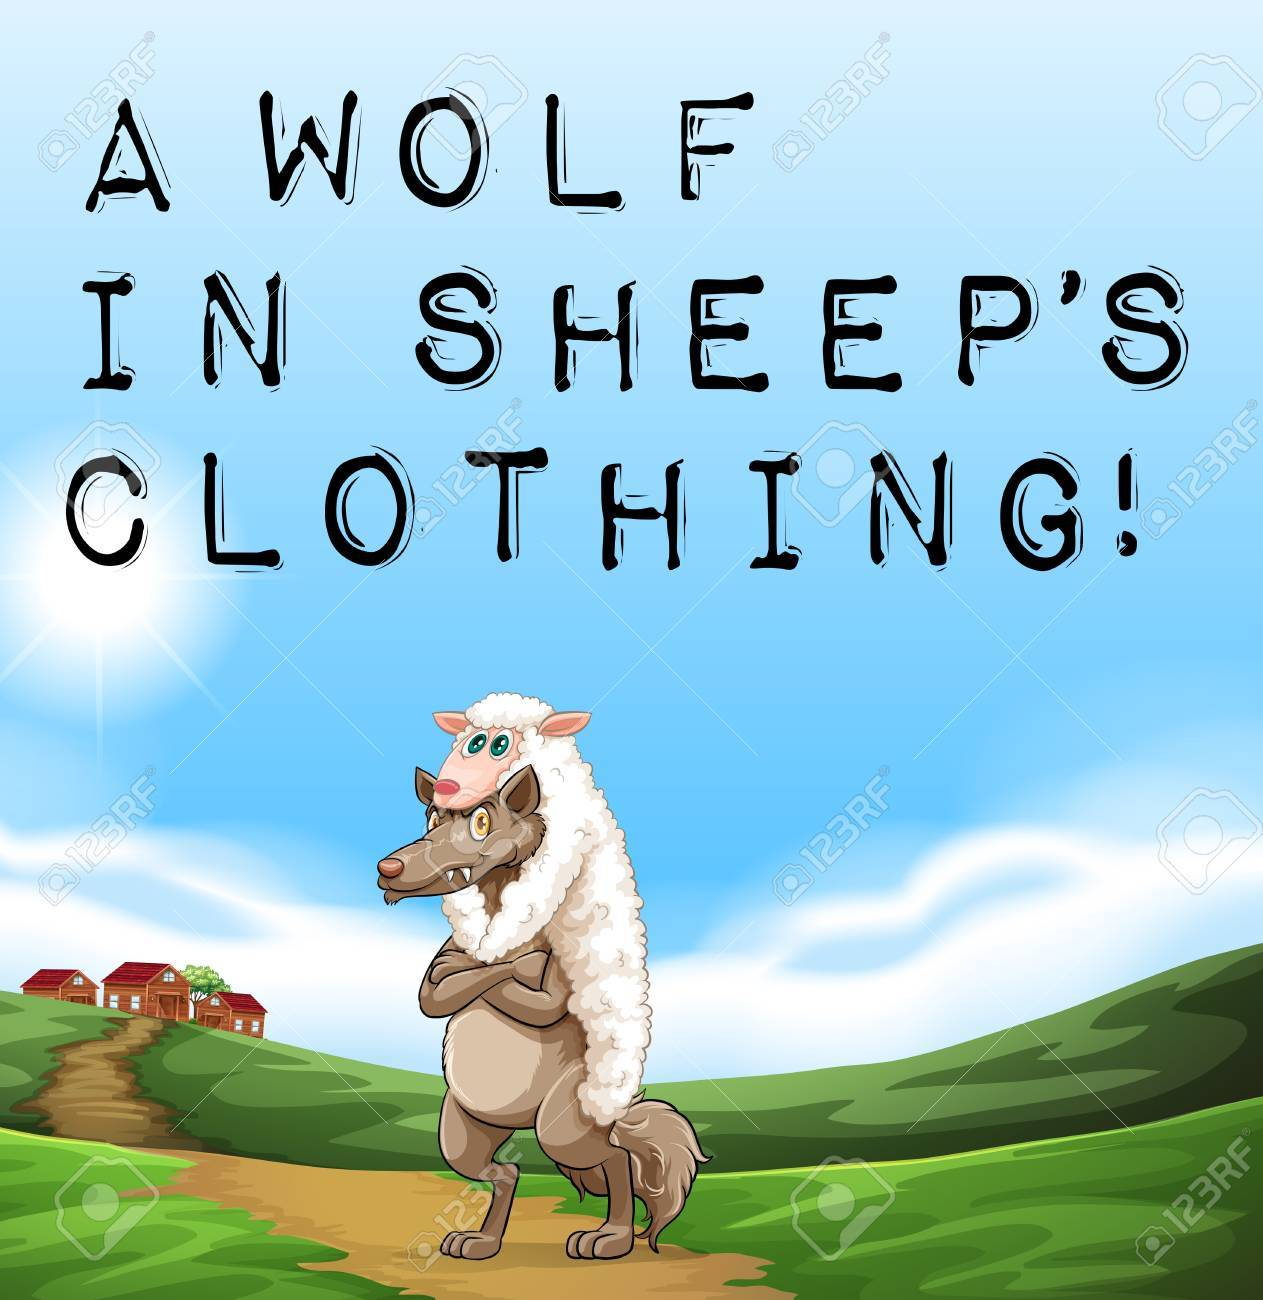 Wolf in sheep's clothing stock illustration. Illustration of sheep.